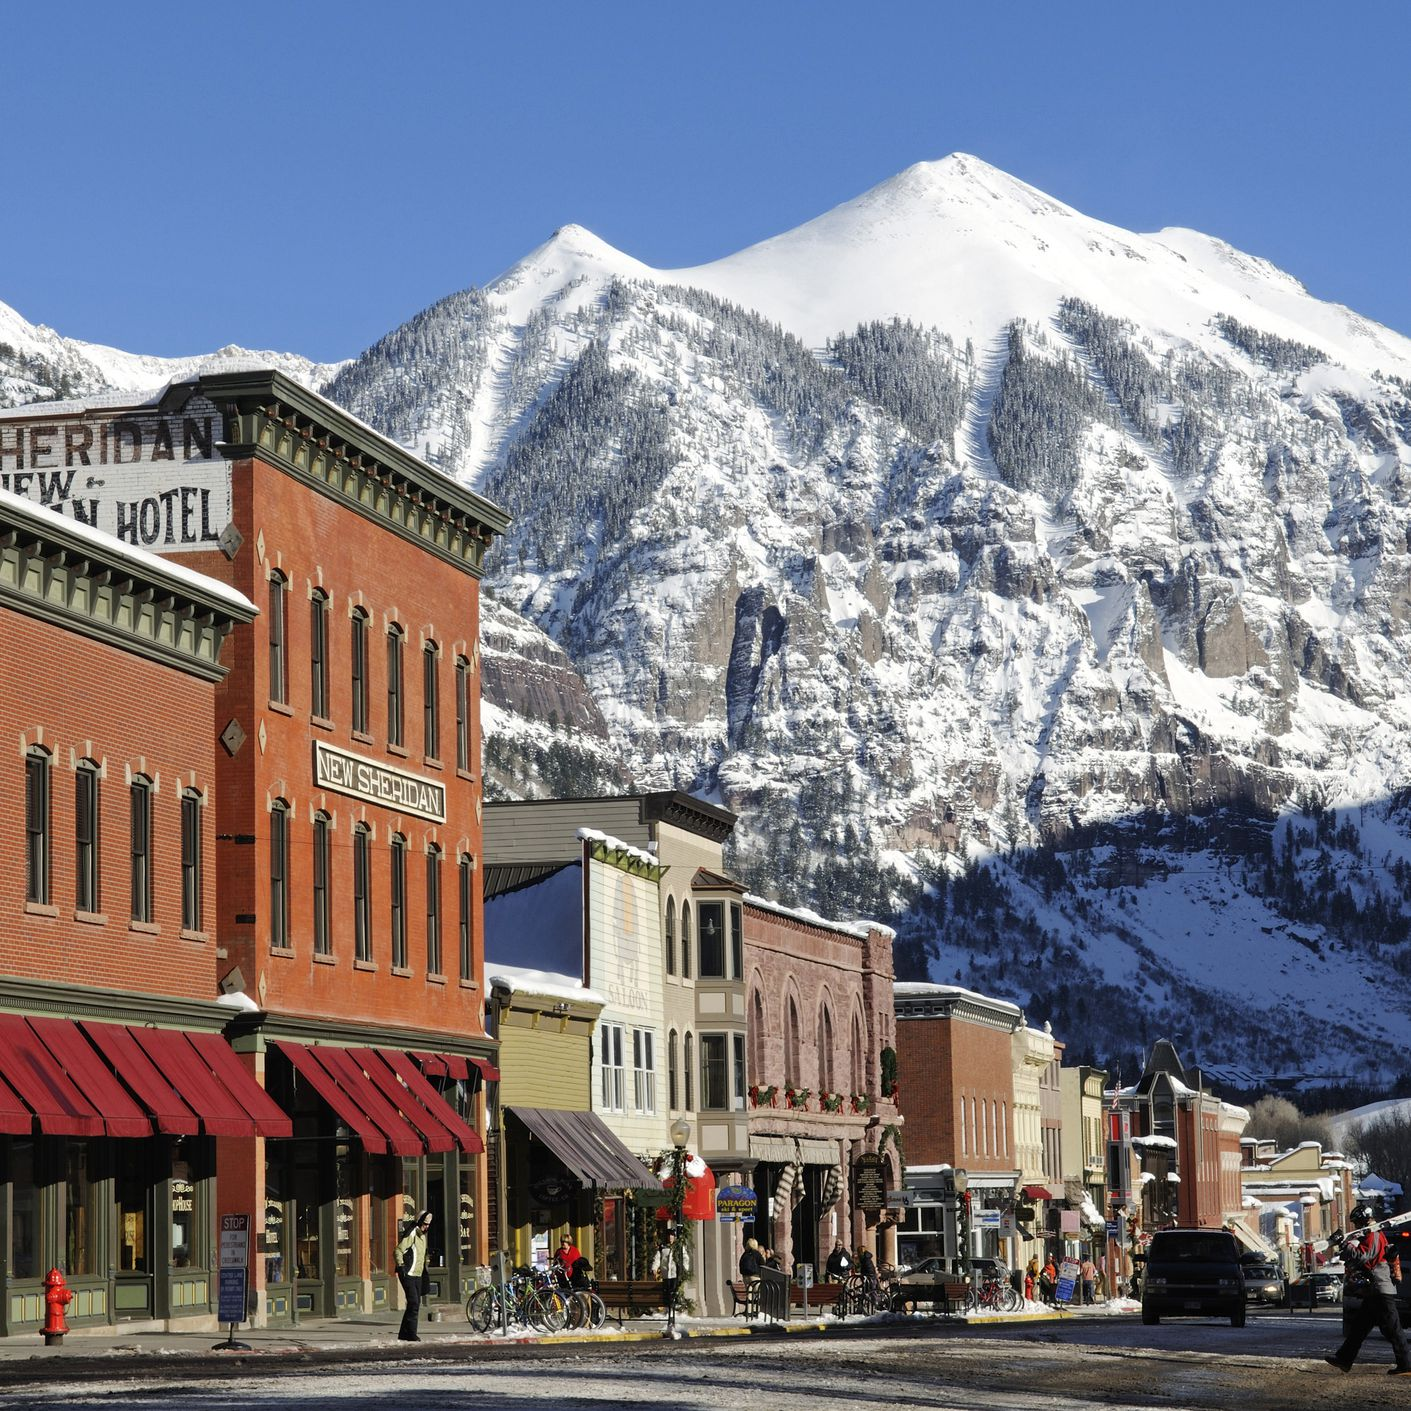 The Top 9 Things to Do in Telluride, Colorado